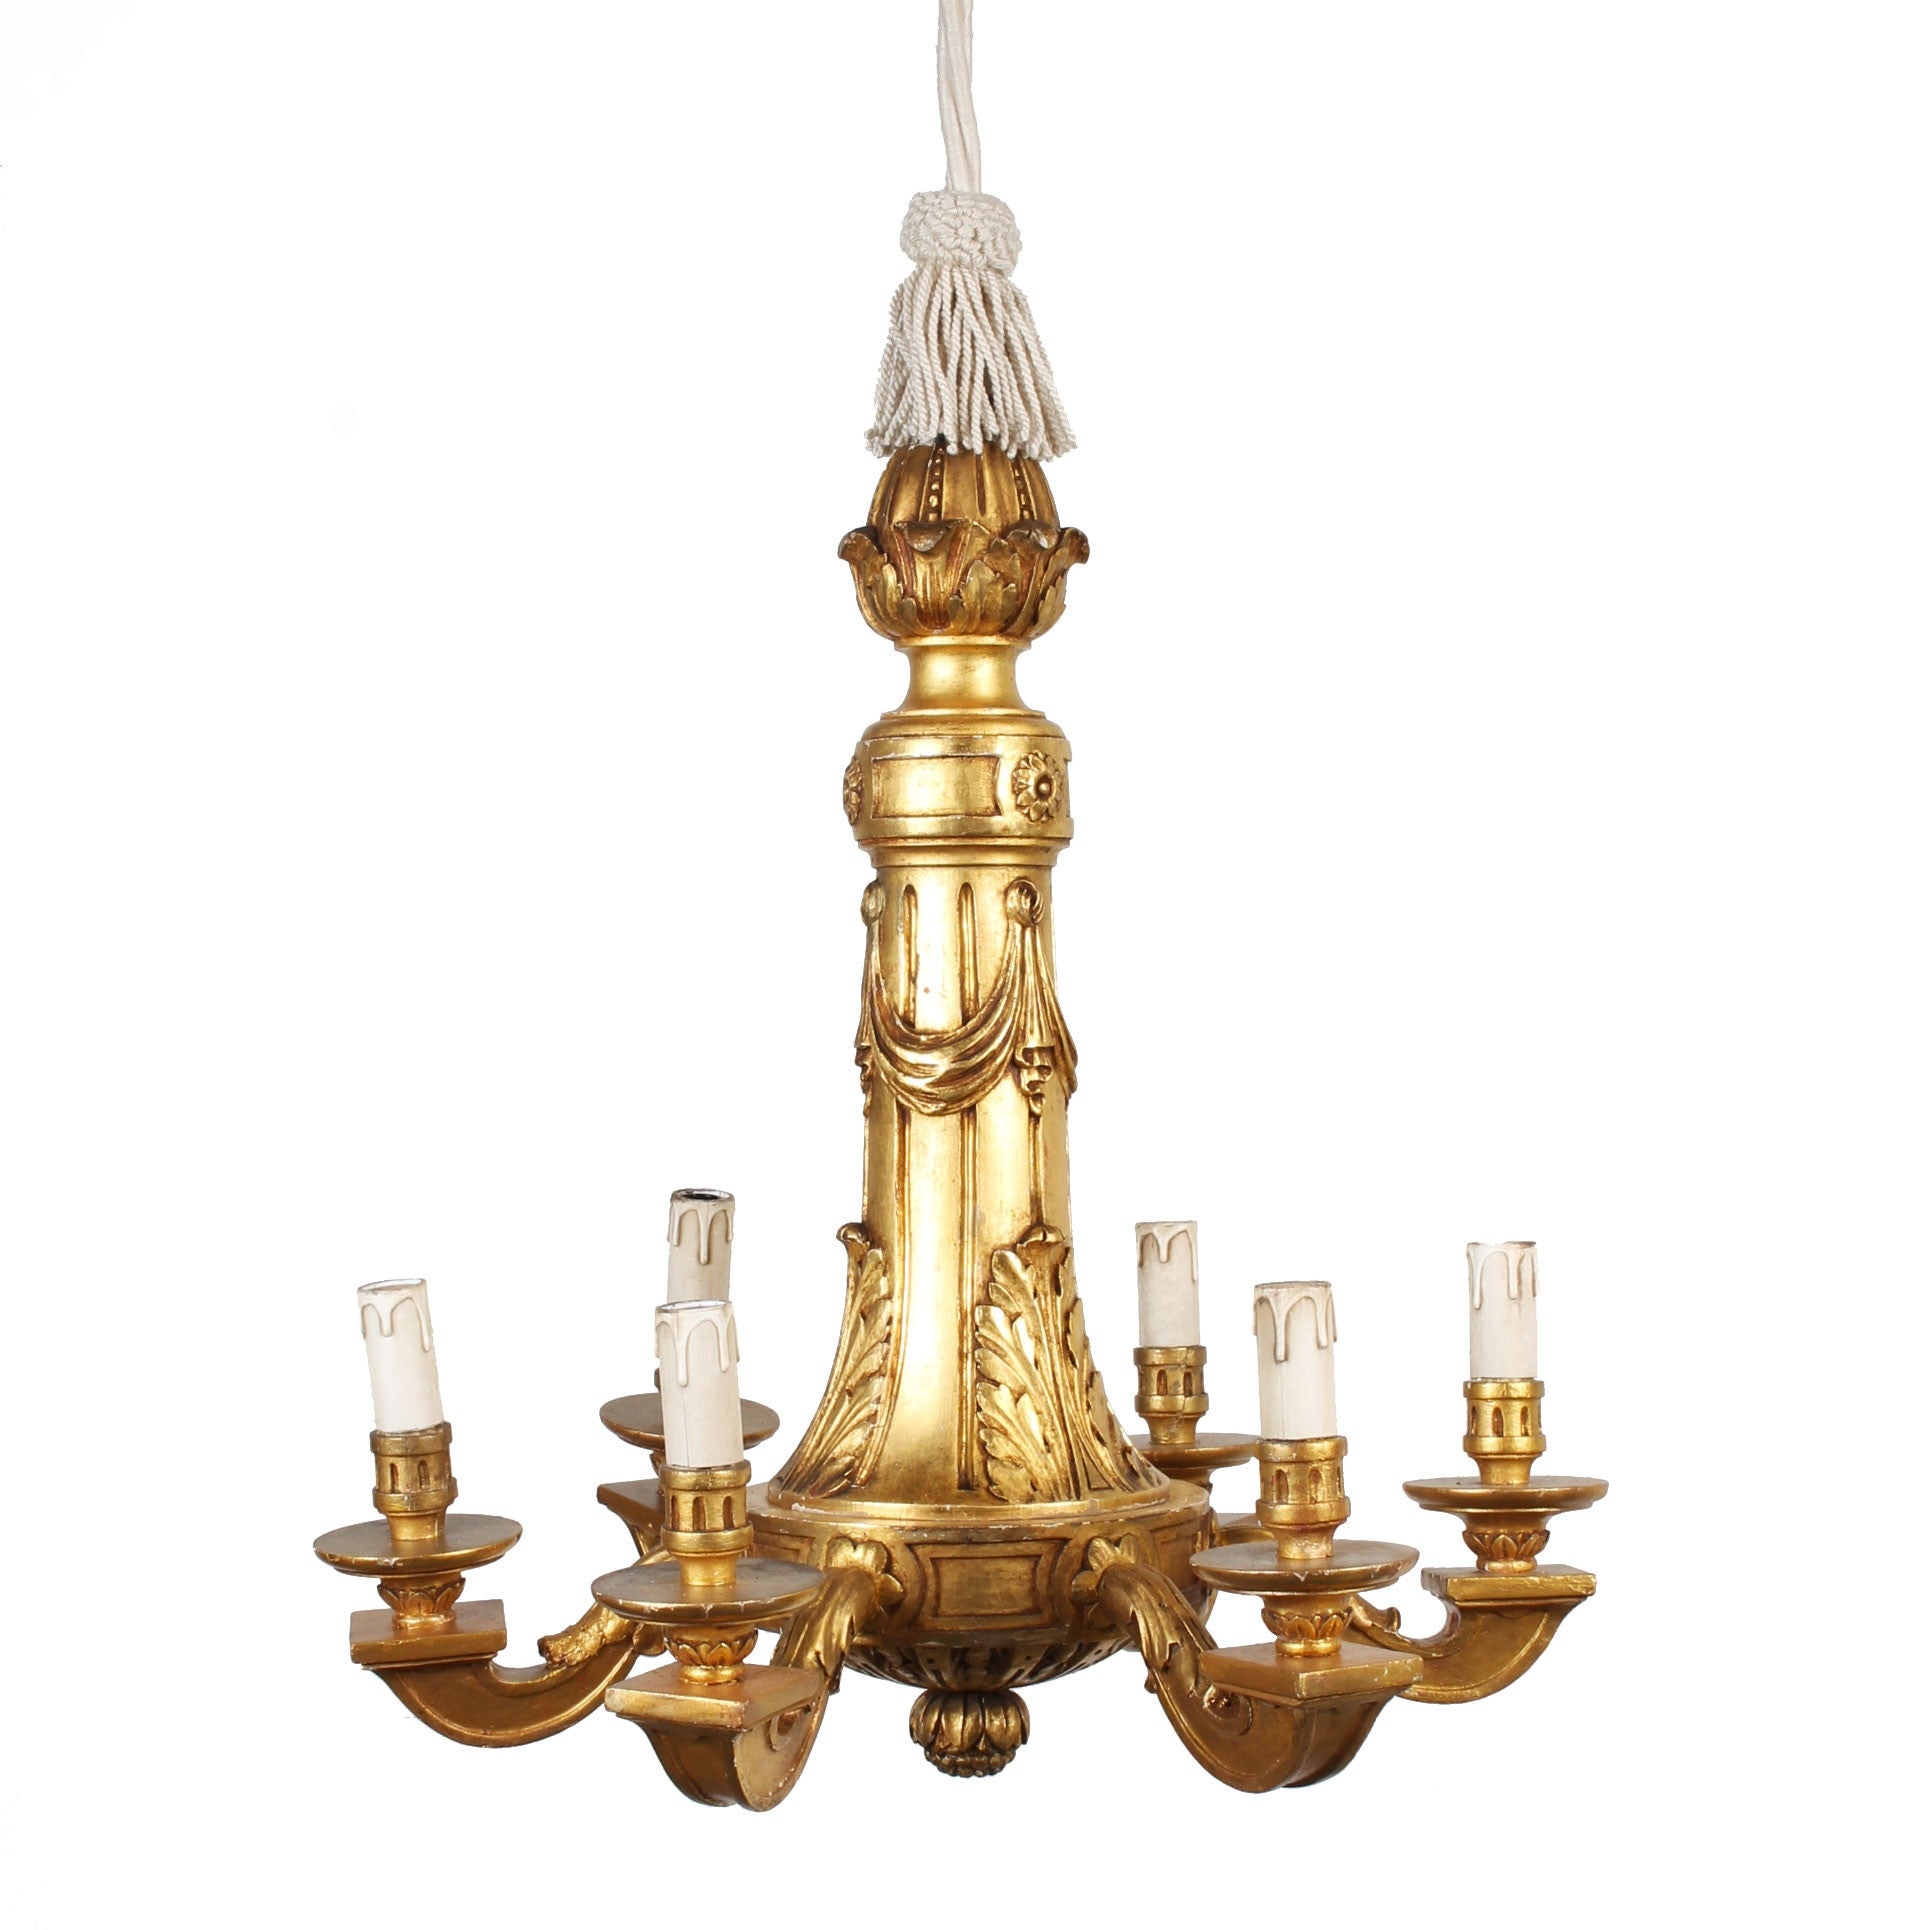 neoclassical lighting. Italian Neoclassical 6-light Giltwood Chandelier Neoclassical Lighting E